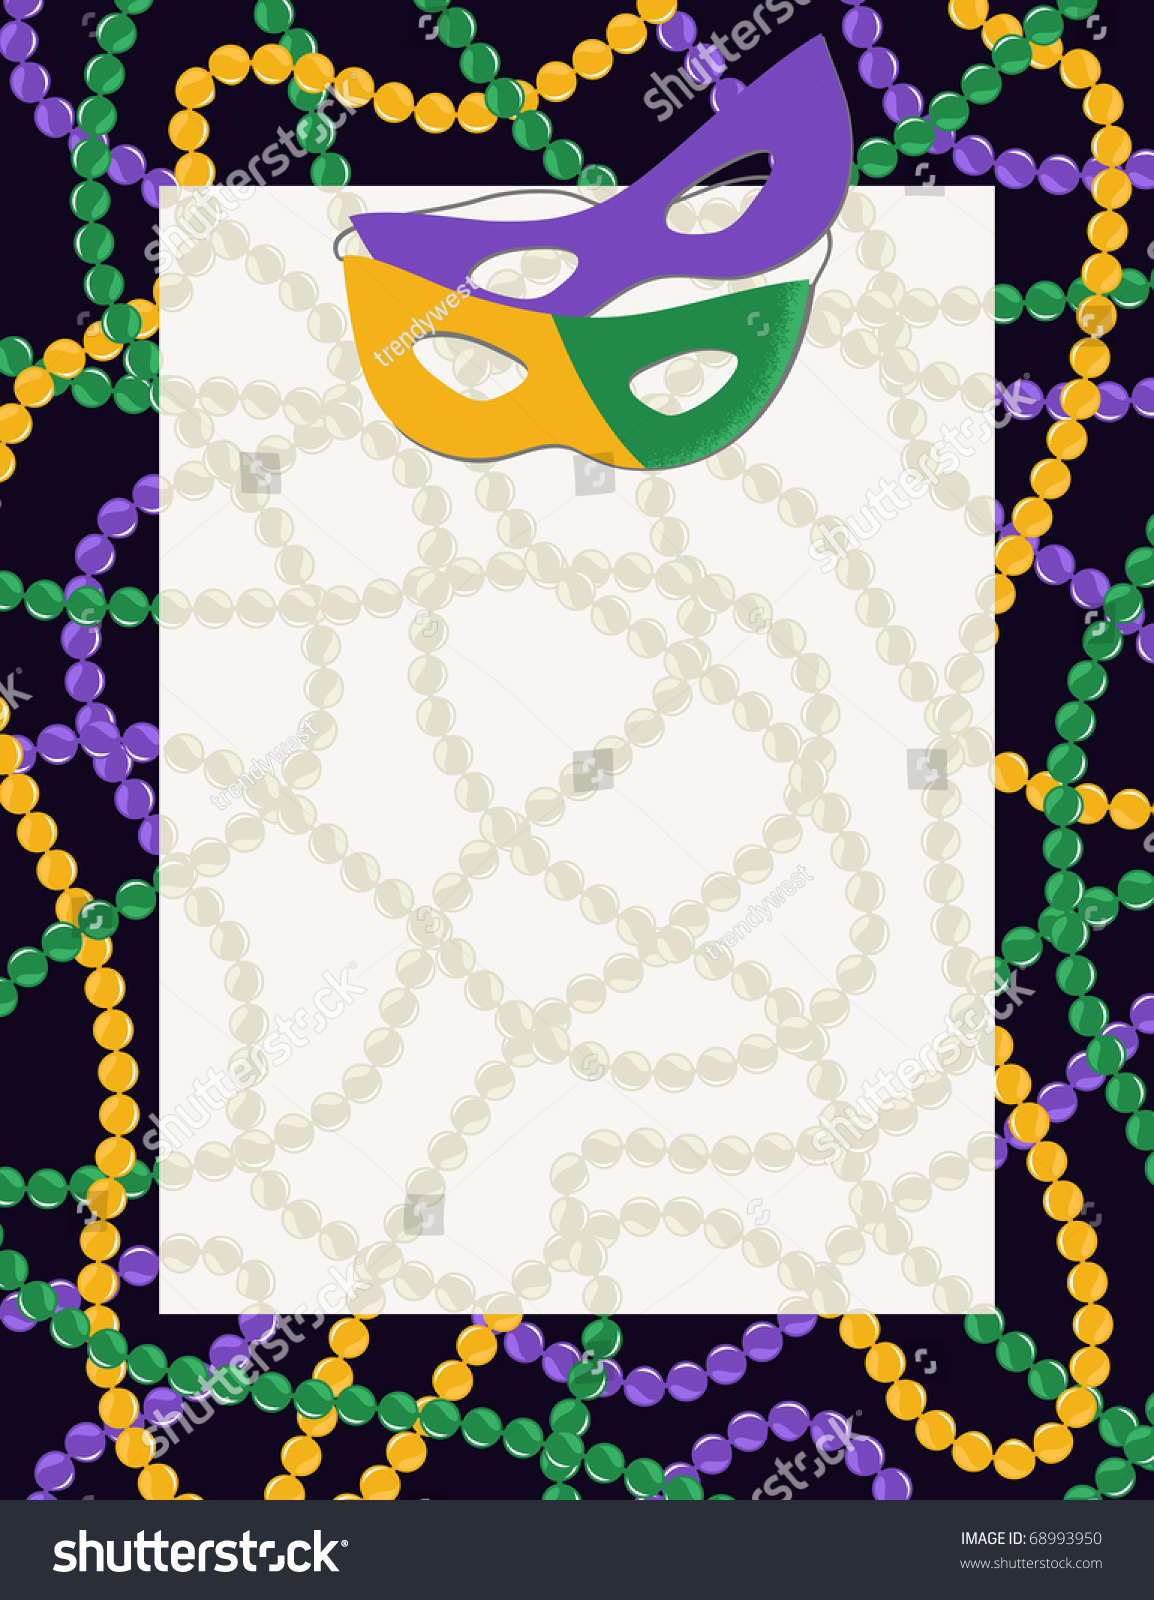 illustration photos gras stock vector of mardi beads carnival